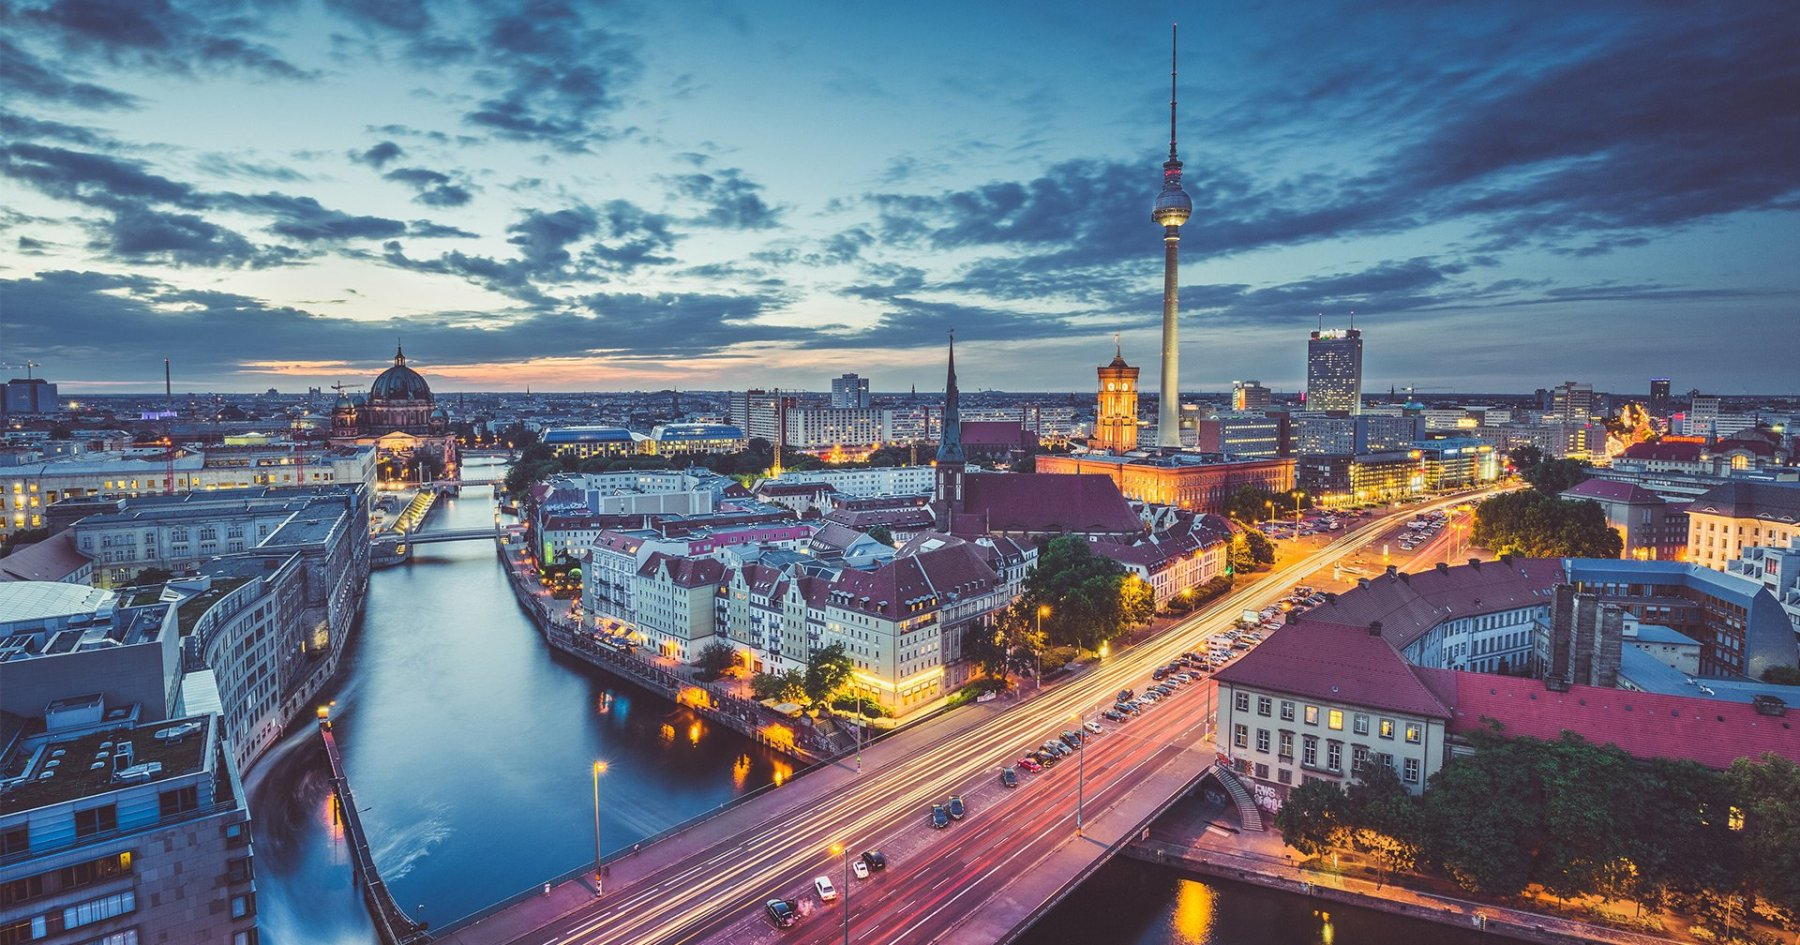 Win a Trip for 2 to Berlin